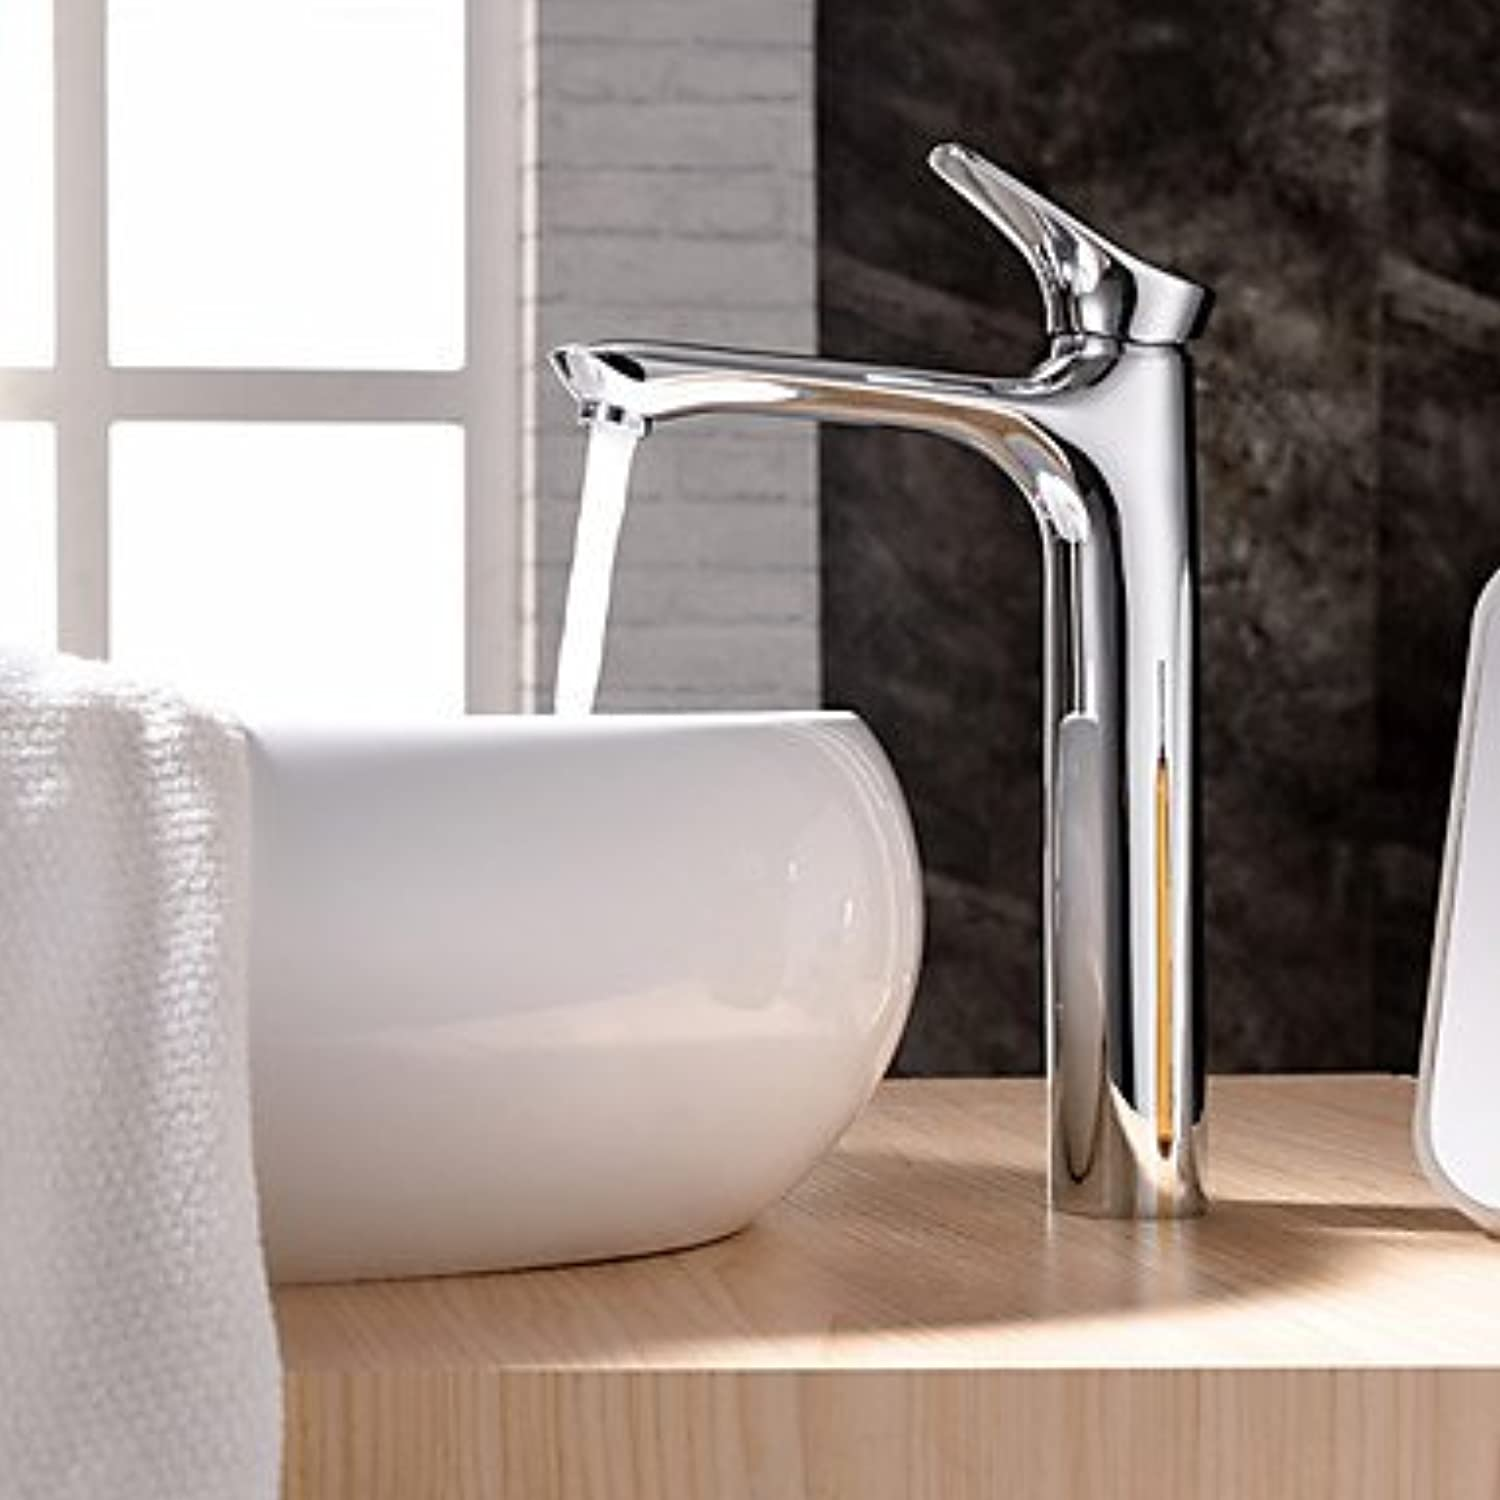 SUNNY KEY-Bathroom Sink Taps@Chrome-plated brass bathroom sink faucets single click tall